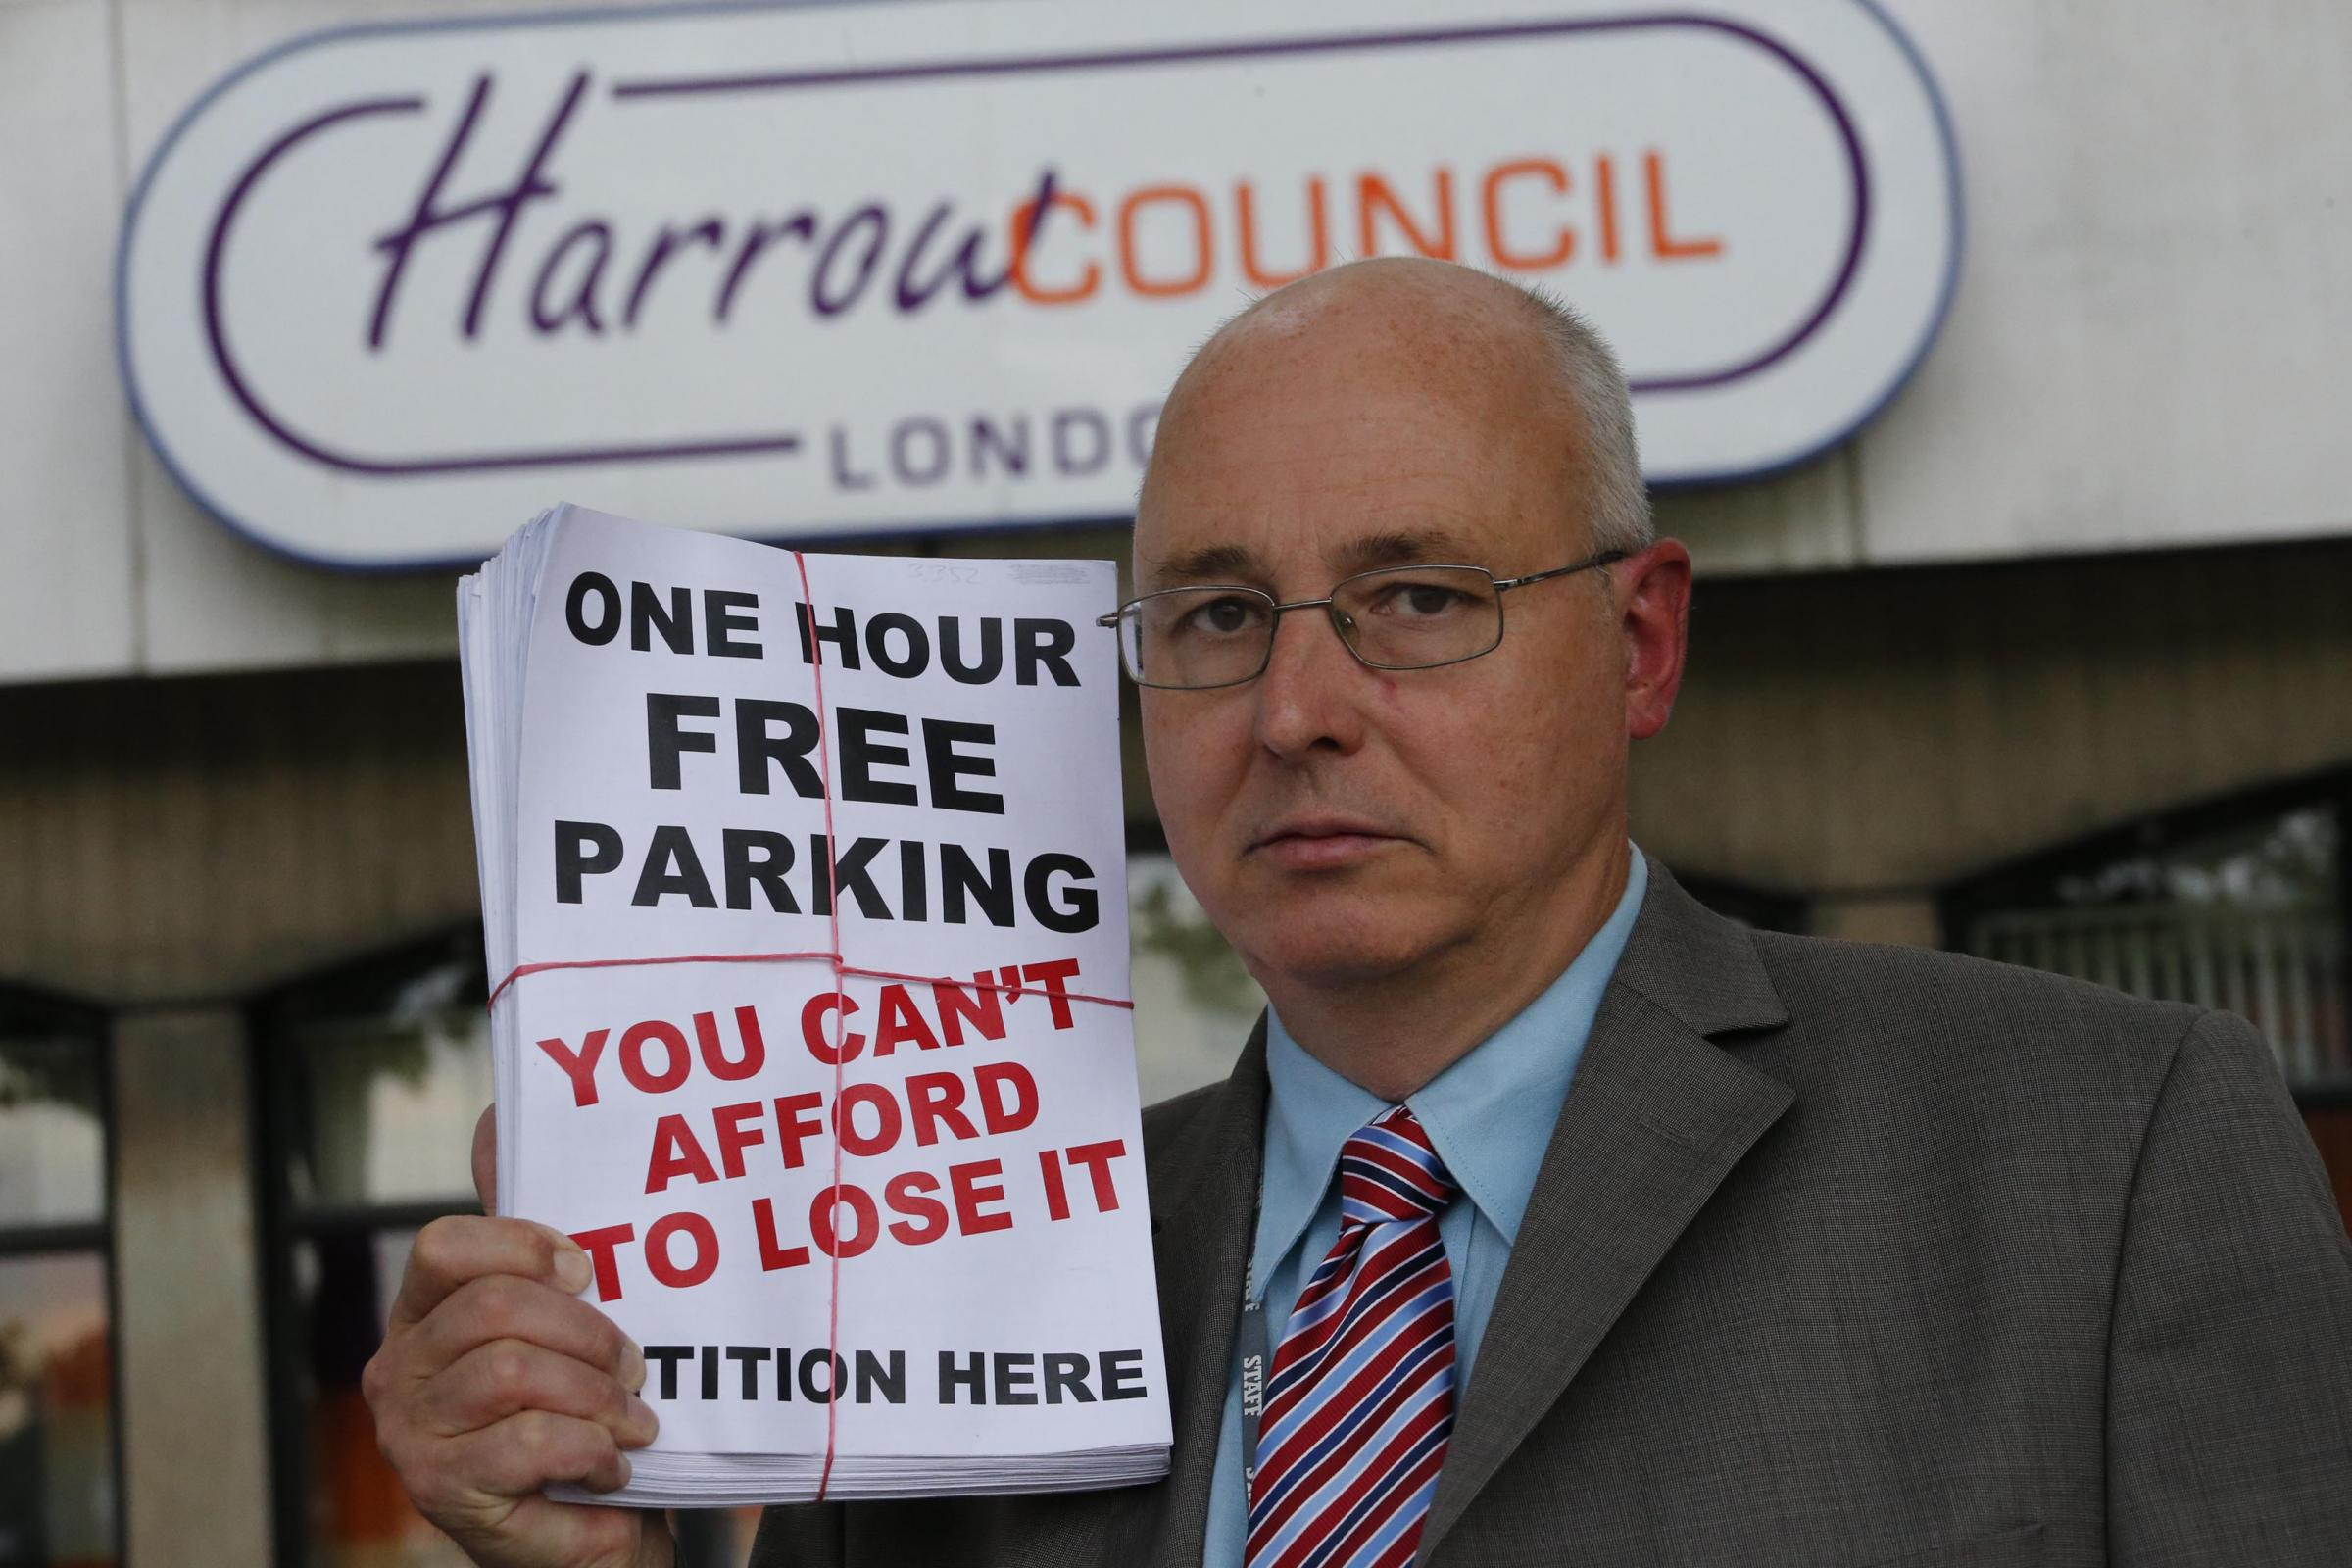 Councillor James Bond handing in his petition for North Harrow's hour free parking which was scrapped last year